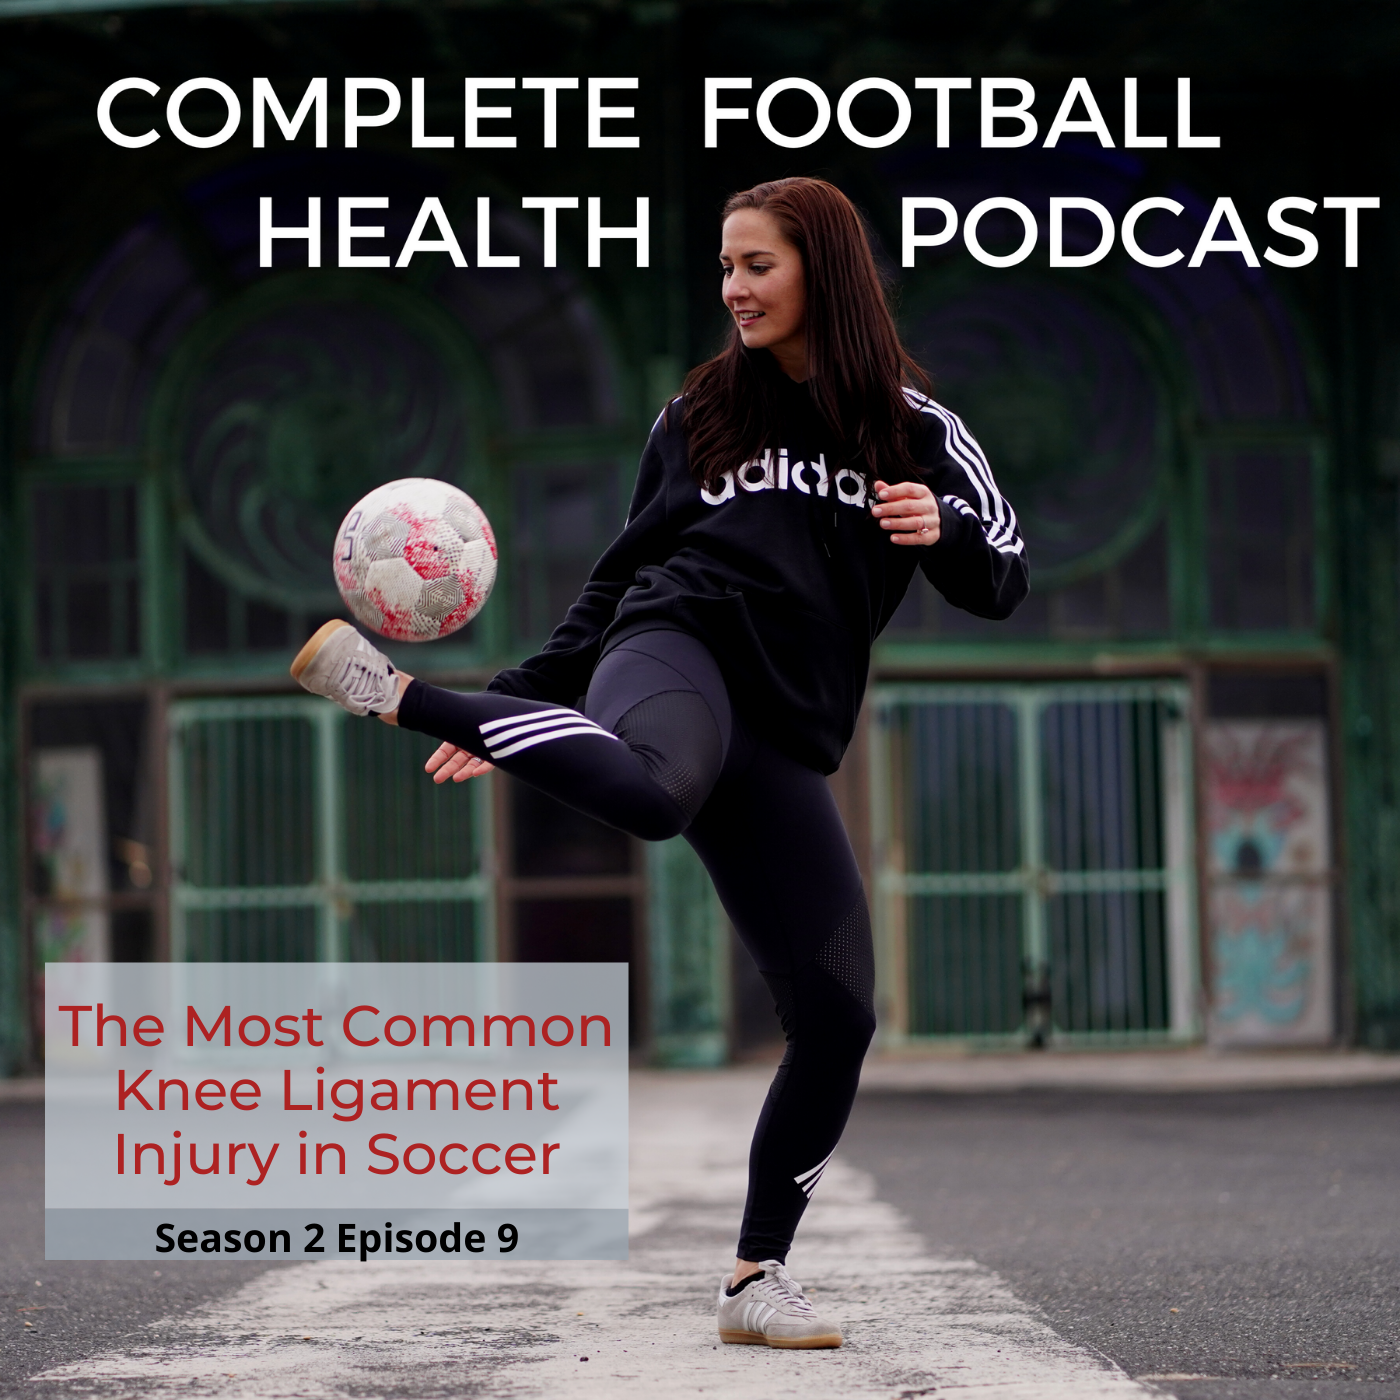 The Most Common Knee Ligament Injury In Soccer In 2020 Football Health Health Podcast Sports Physical Therapy